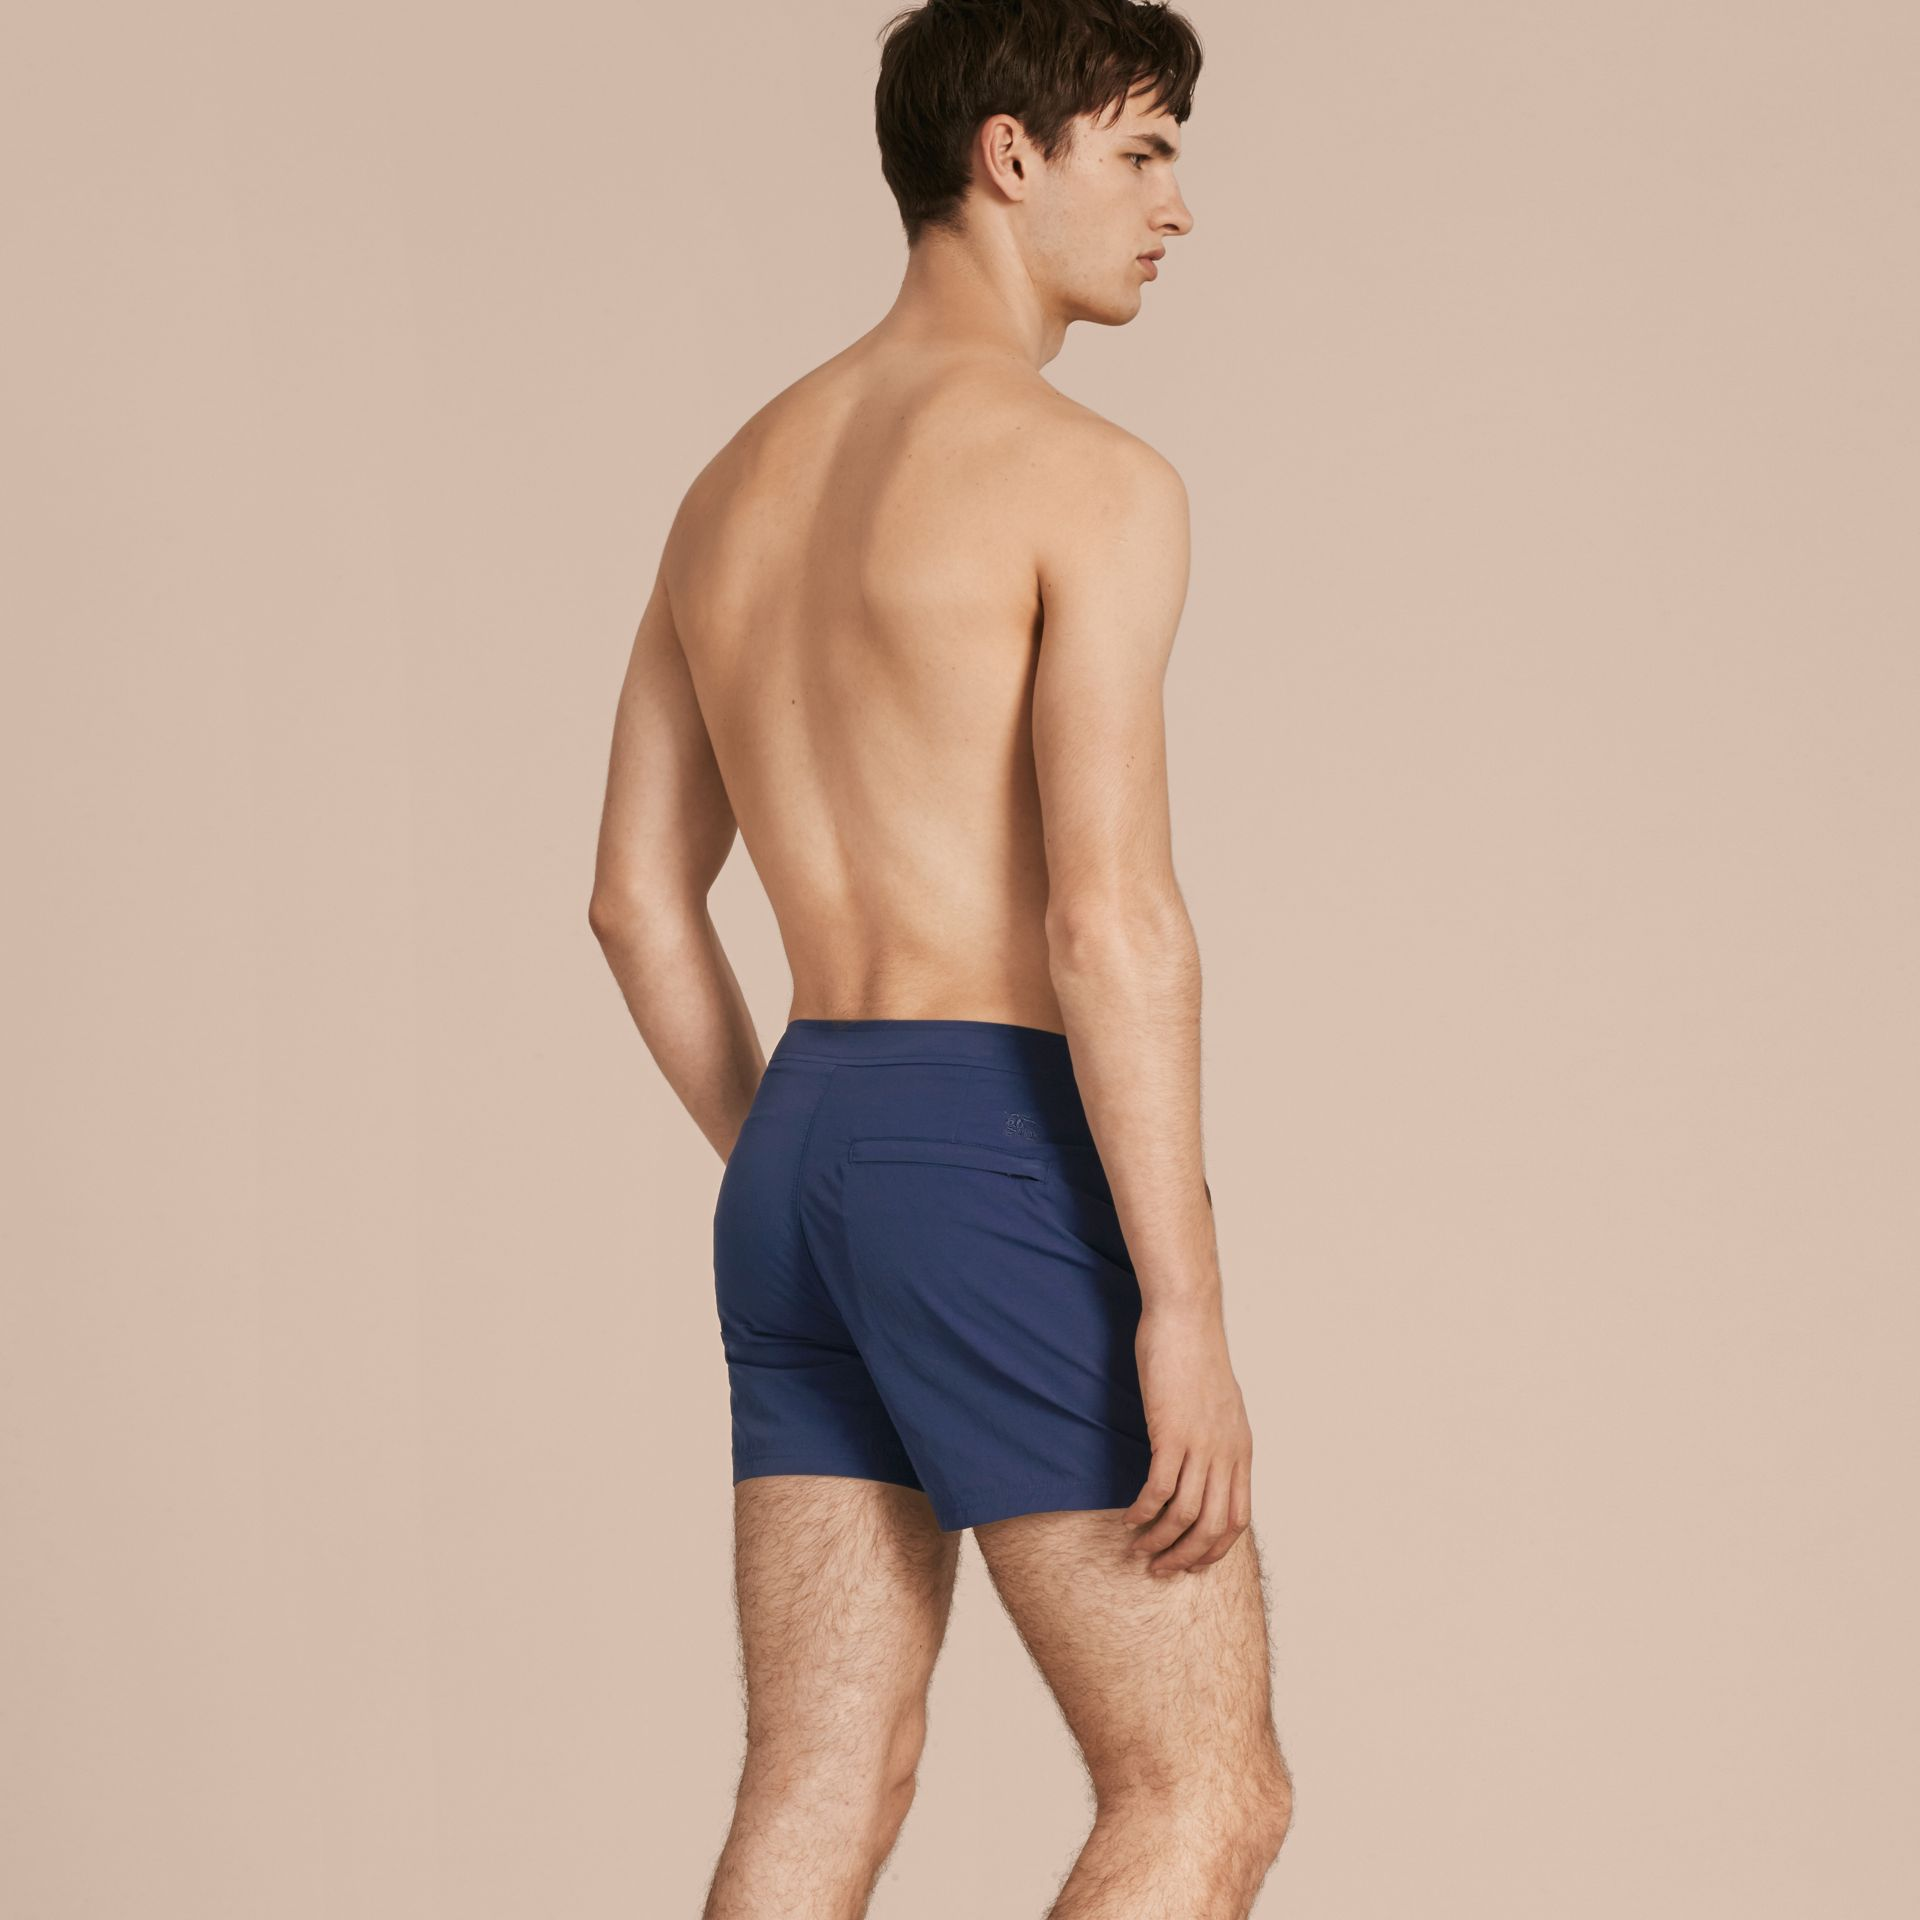 Tailored Swim Shorts in Bright Navy - Men | Burberry - gallery image 3